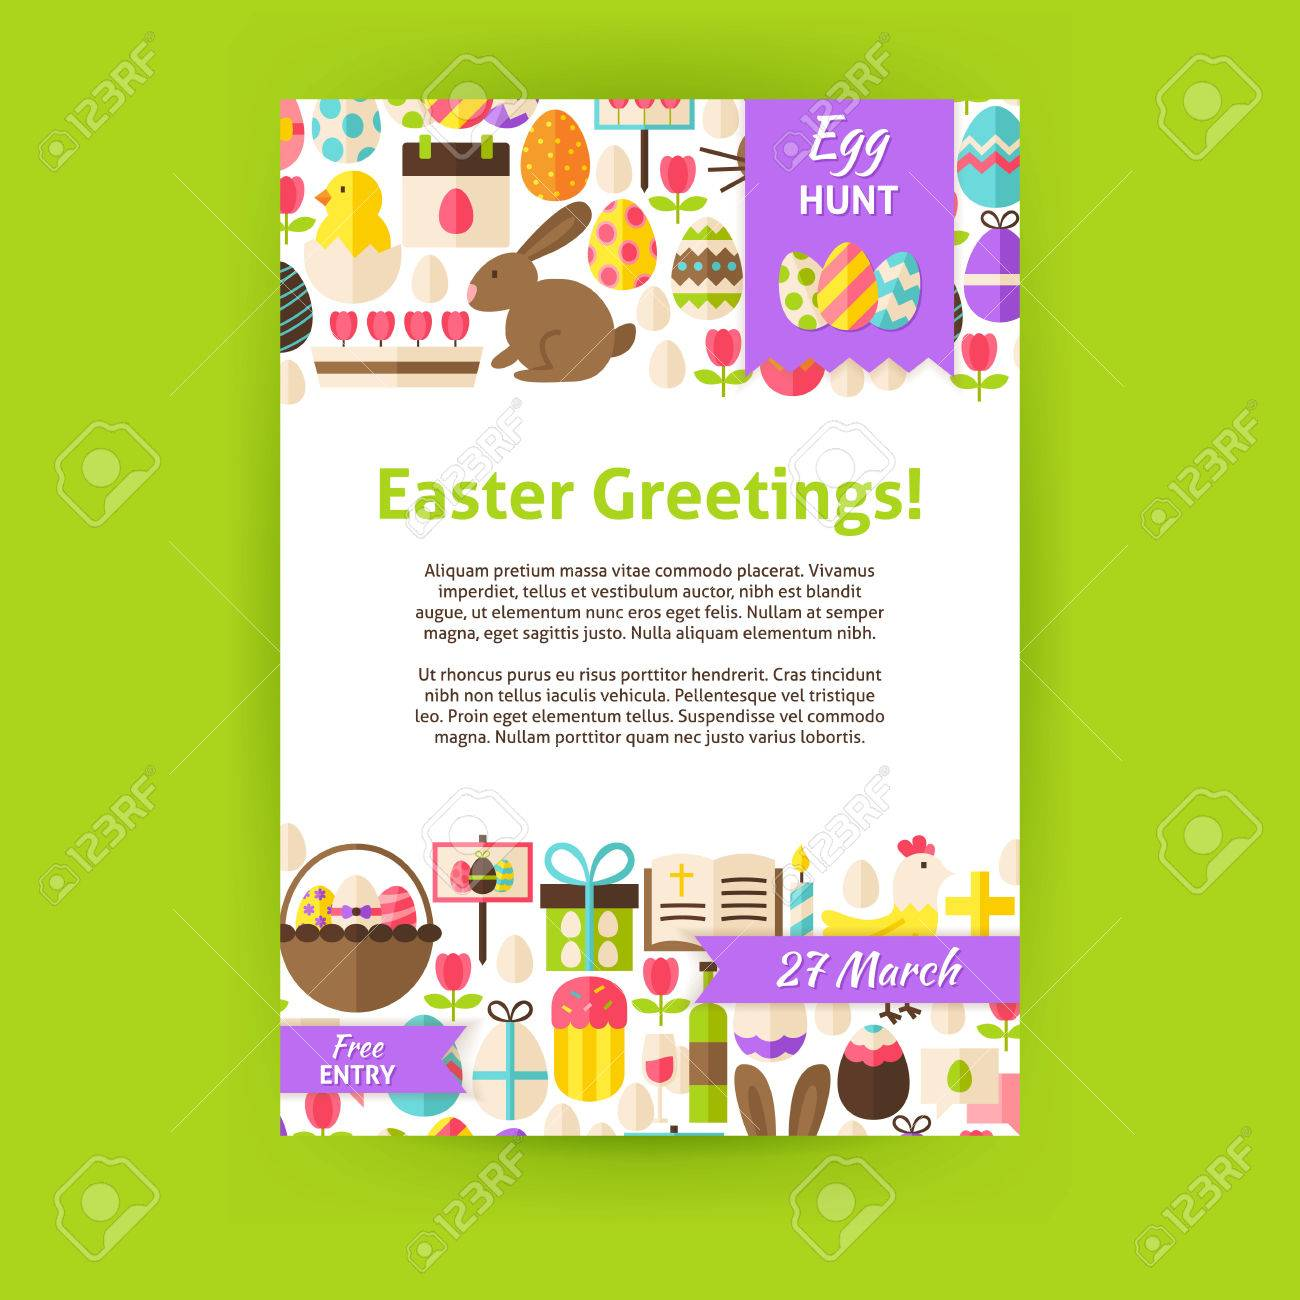 Happy Easter Invitation Template Poster. Flat Design Vector Illustration of Brand Identity for Spring Religious